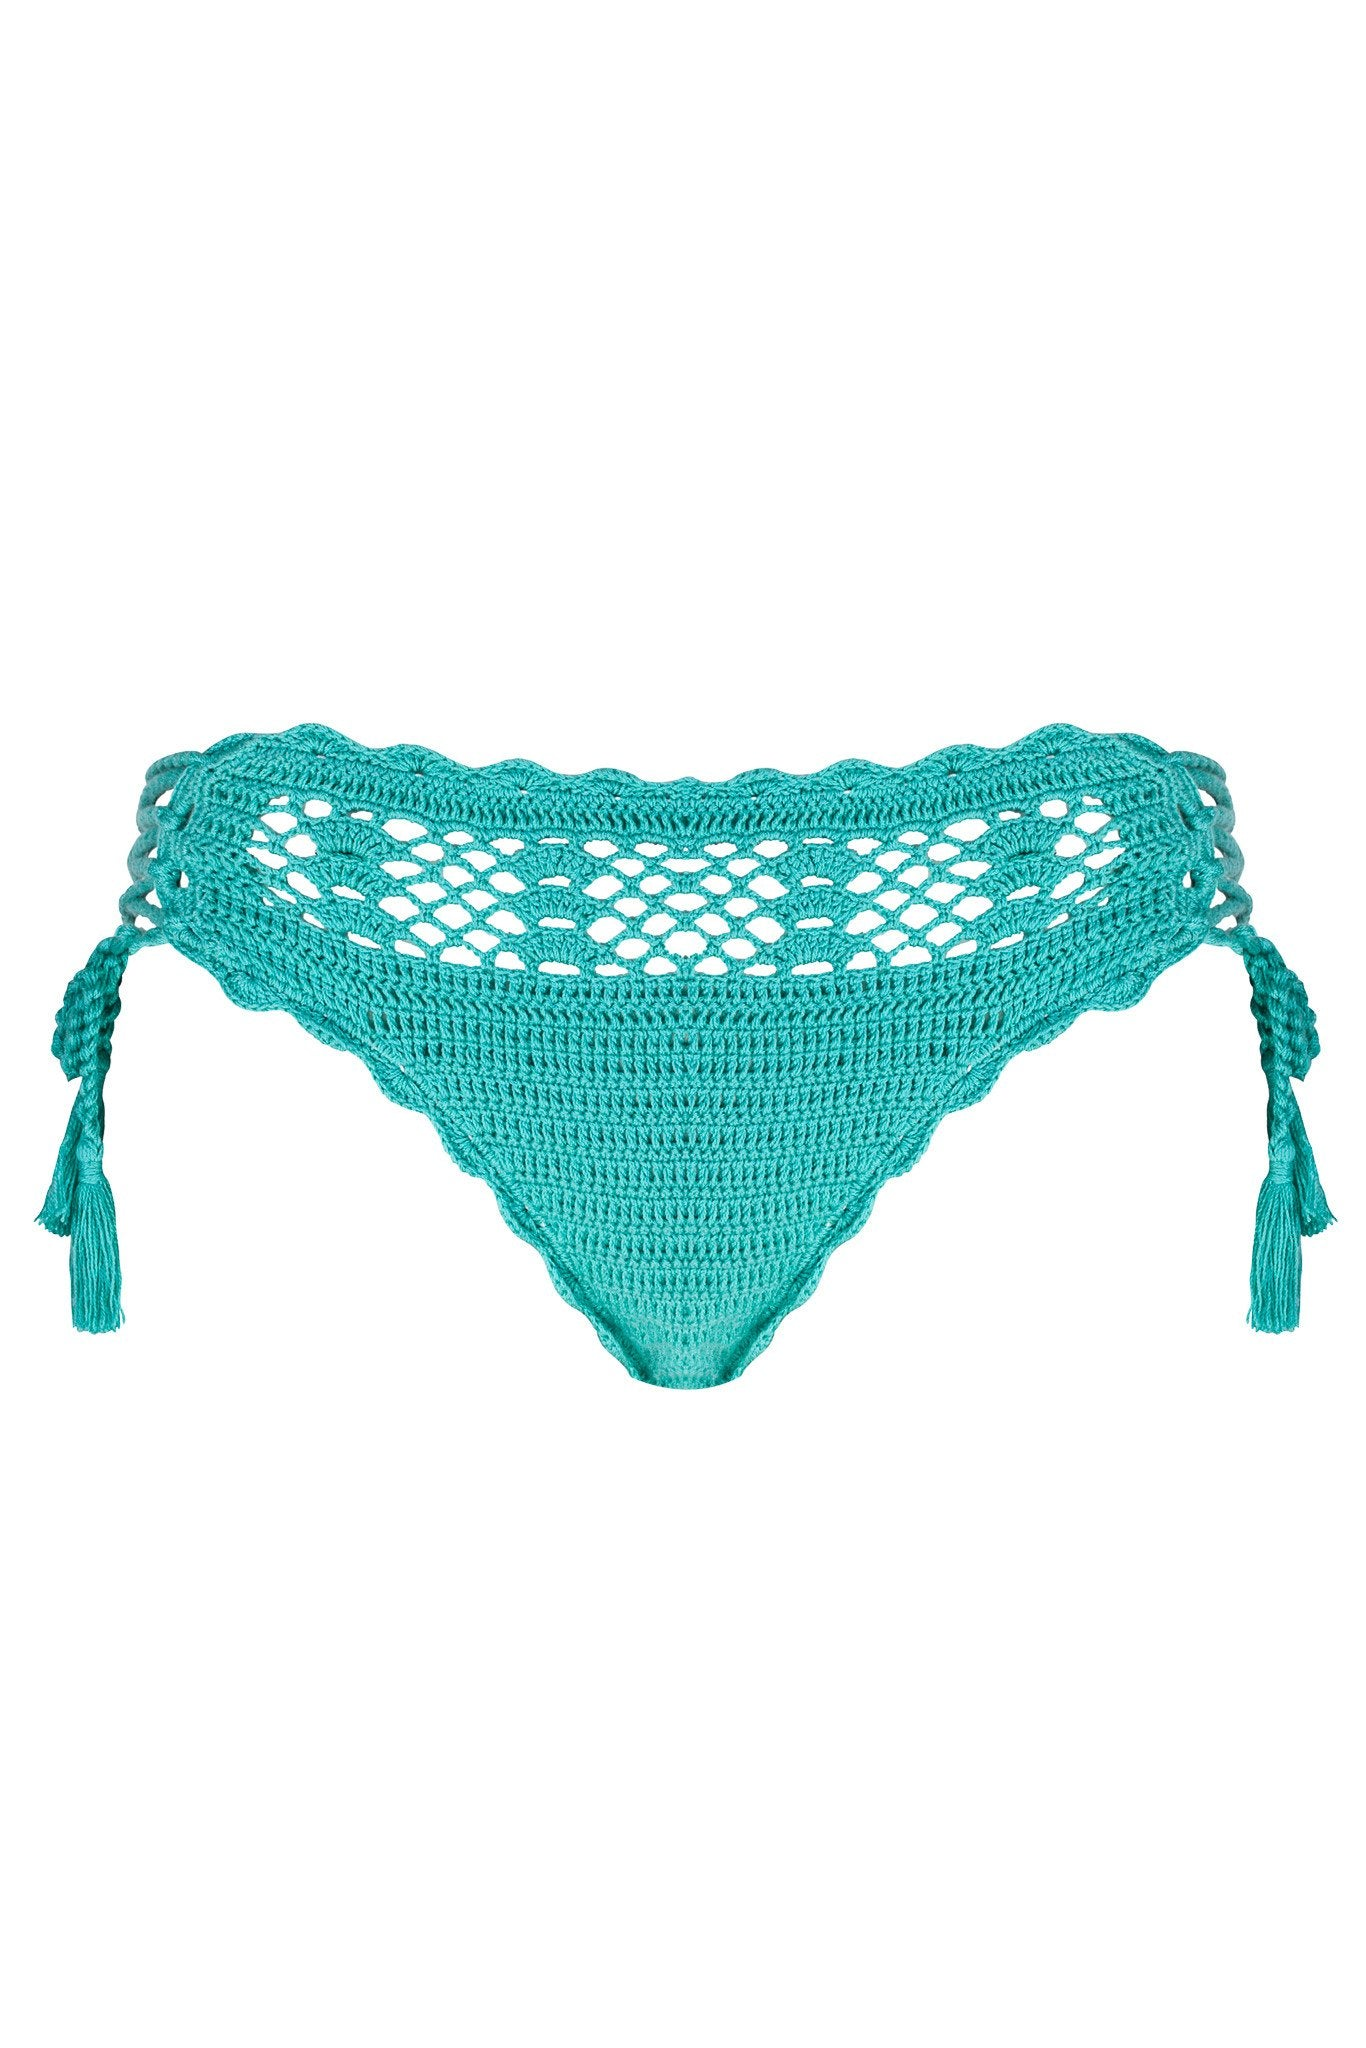 Midi Crochet Bottom | Essaouira - Bikini Bottom by Mer Culture Swimwear Hong Kong